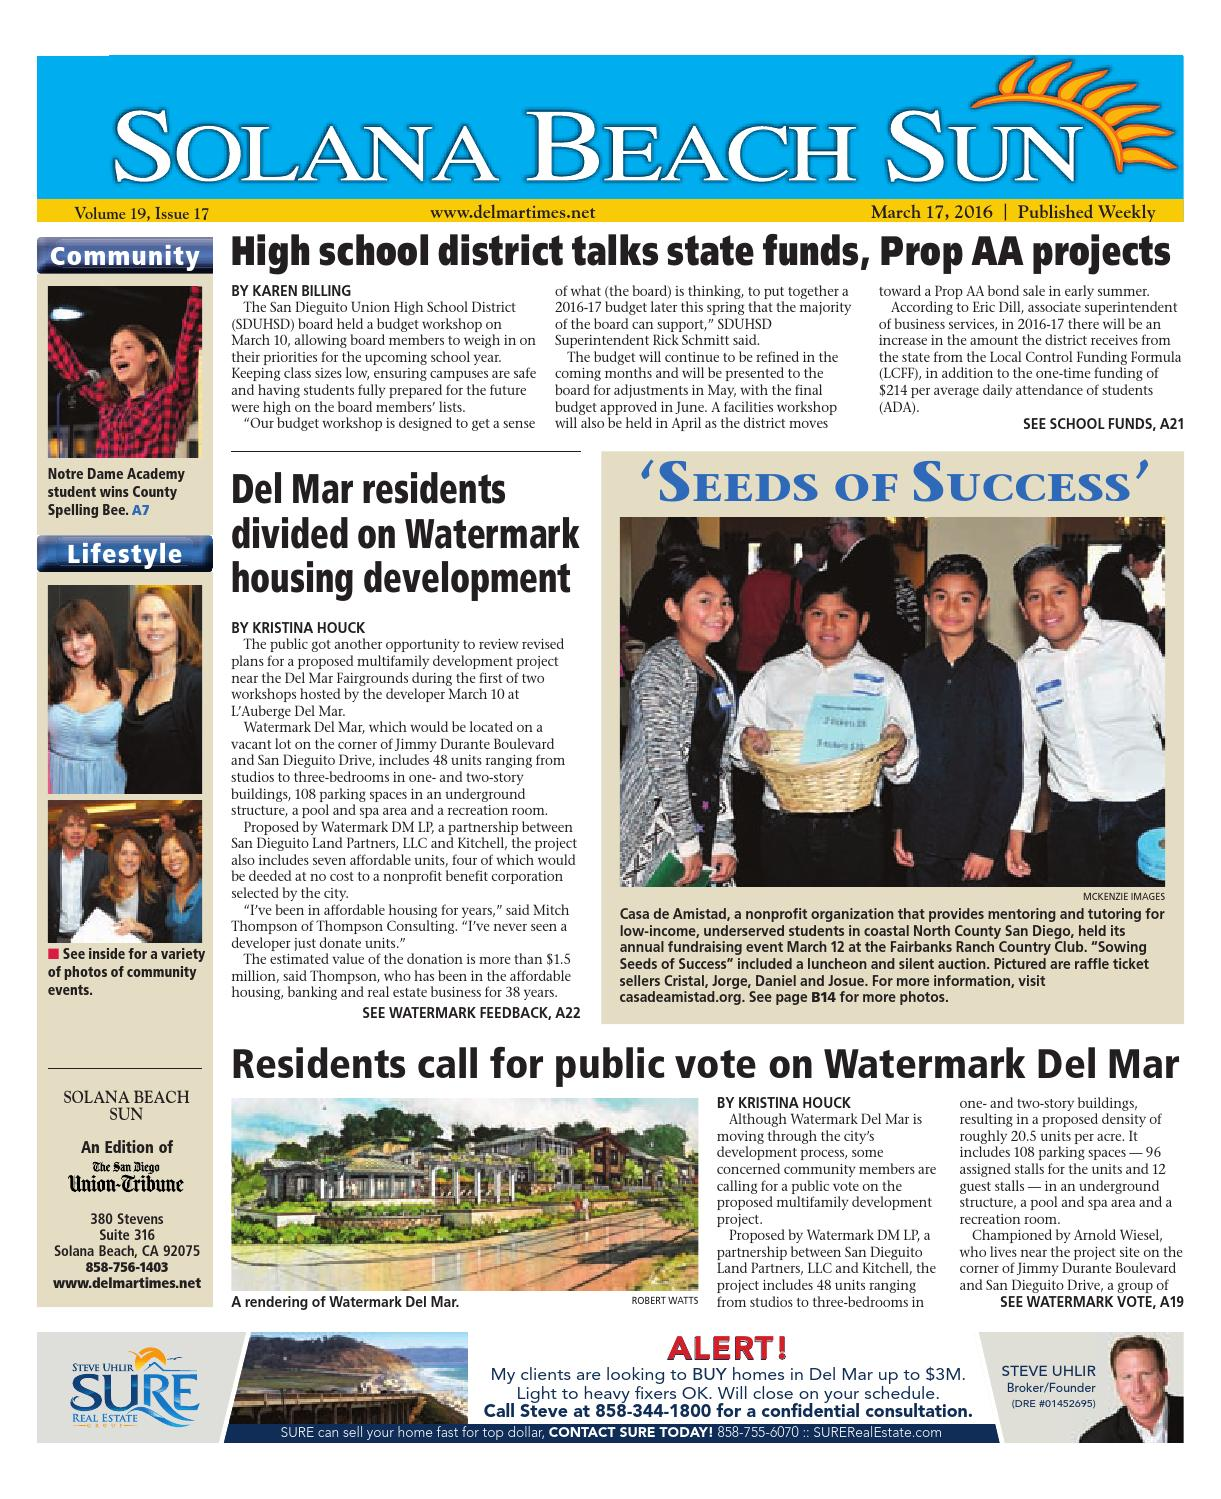 solana beach sun 03 17 16 by mainstreet media issuu